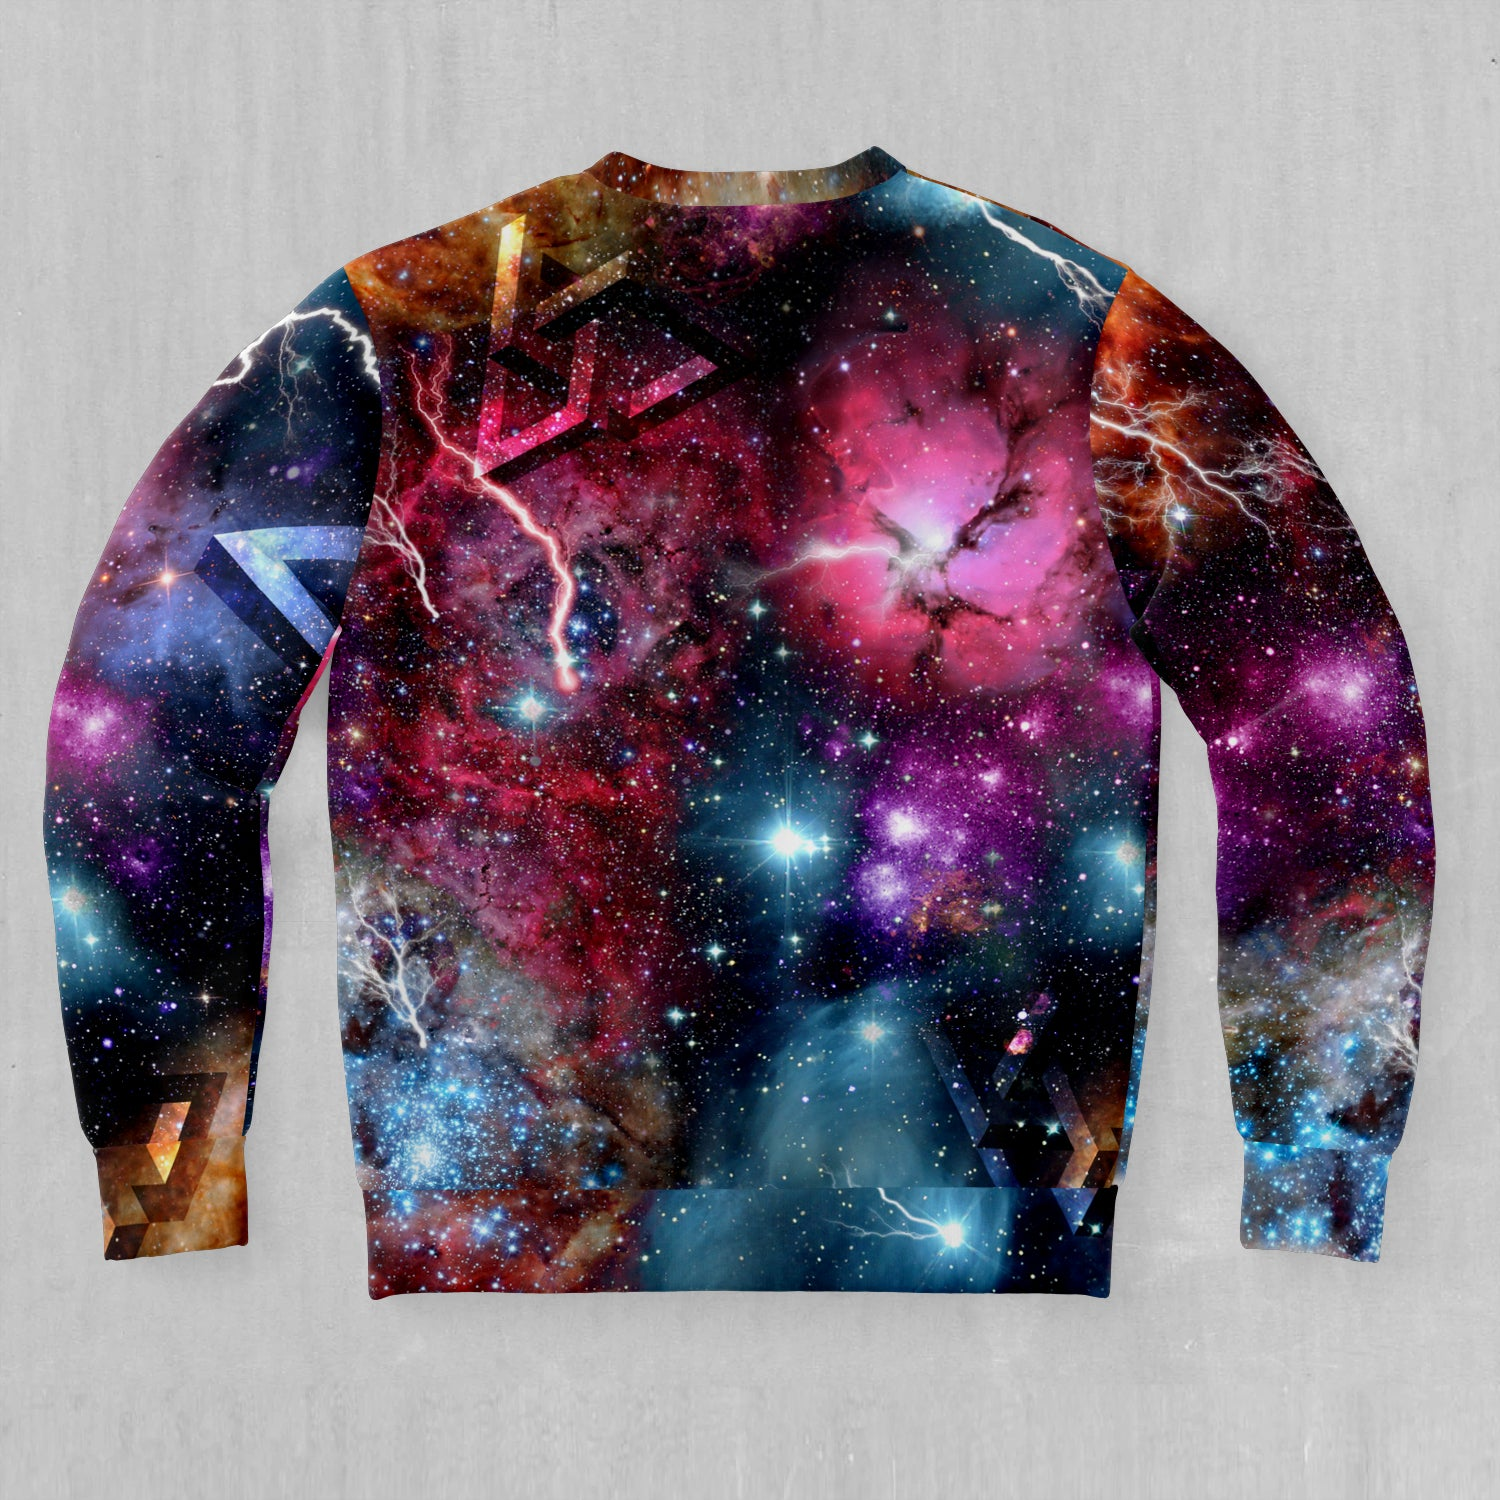 Galaxies Collide Sweatshirt